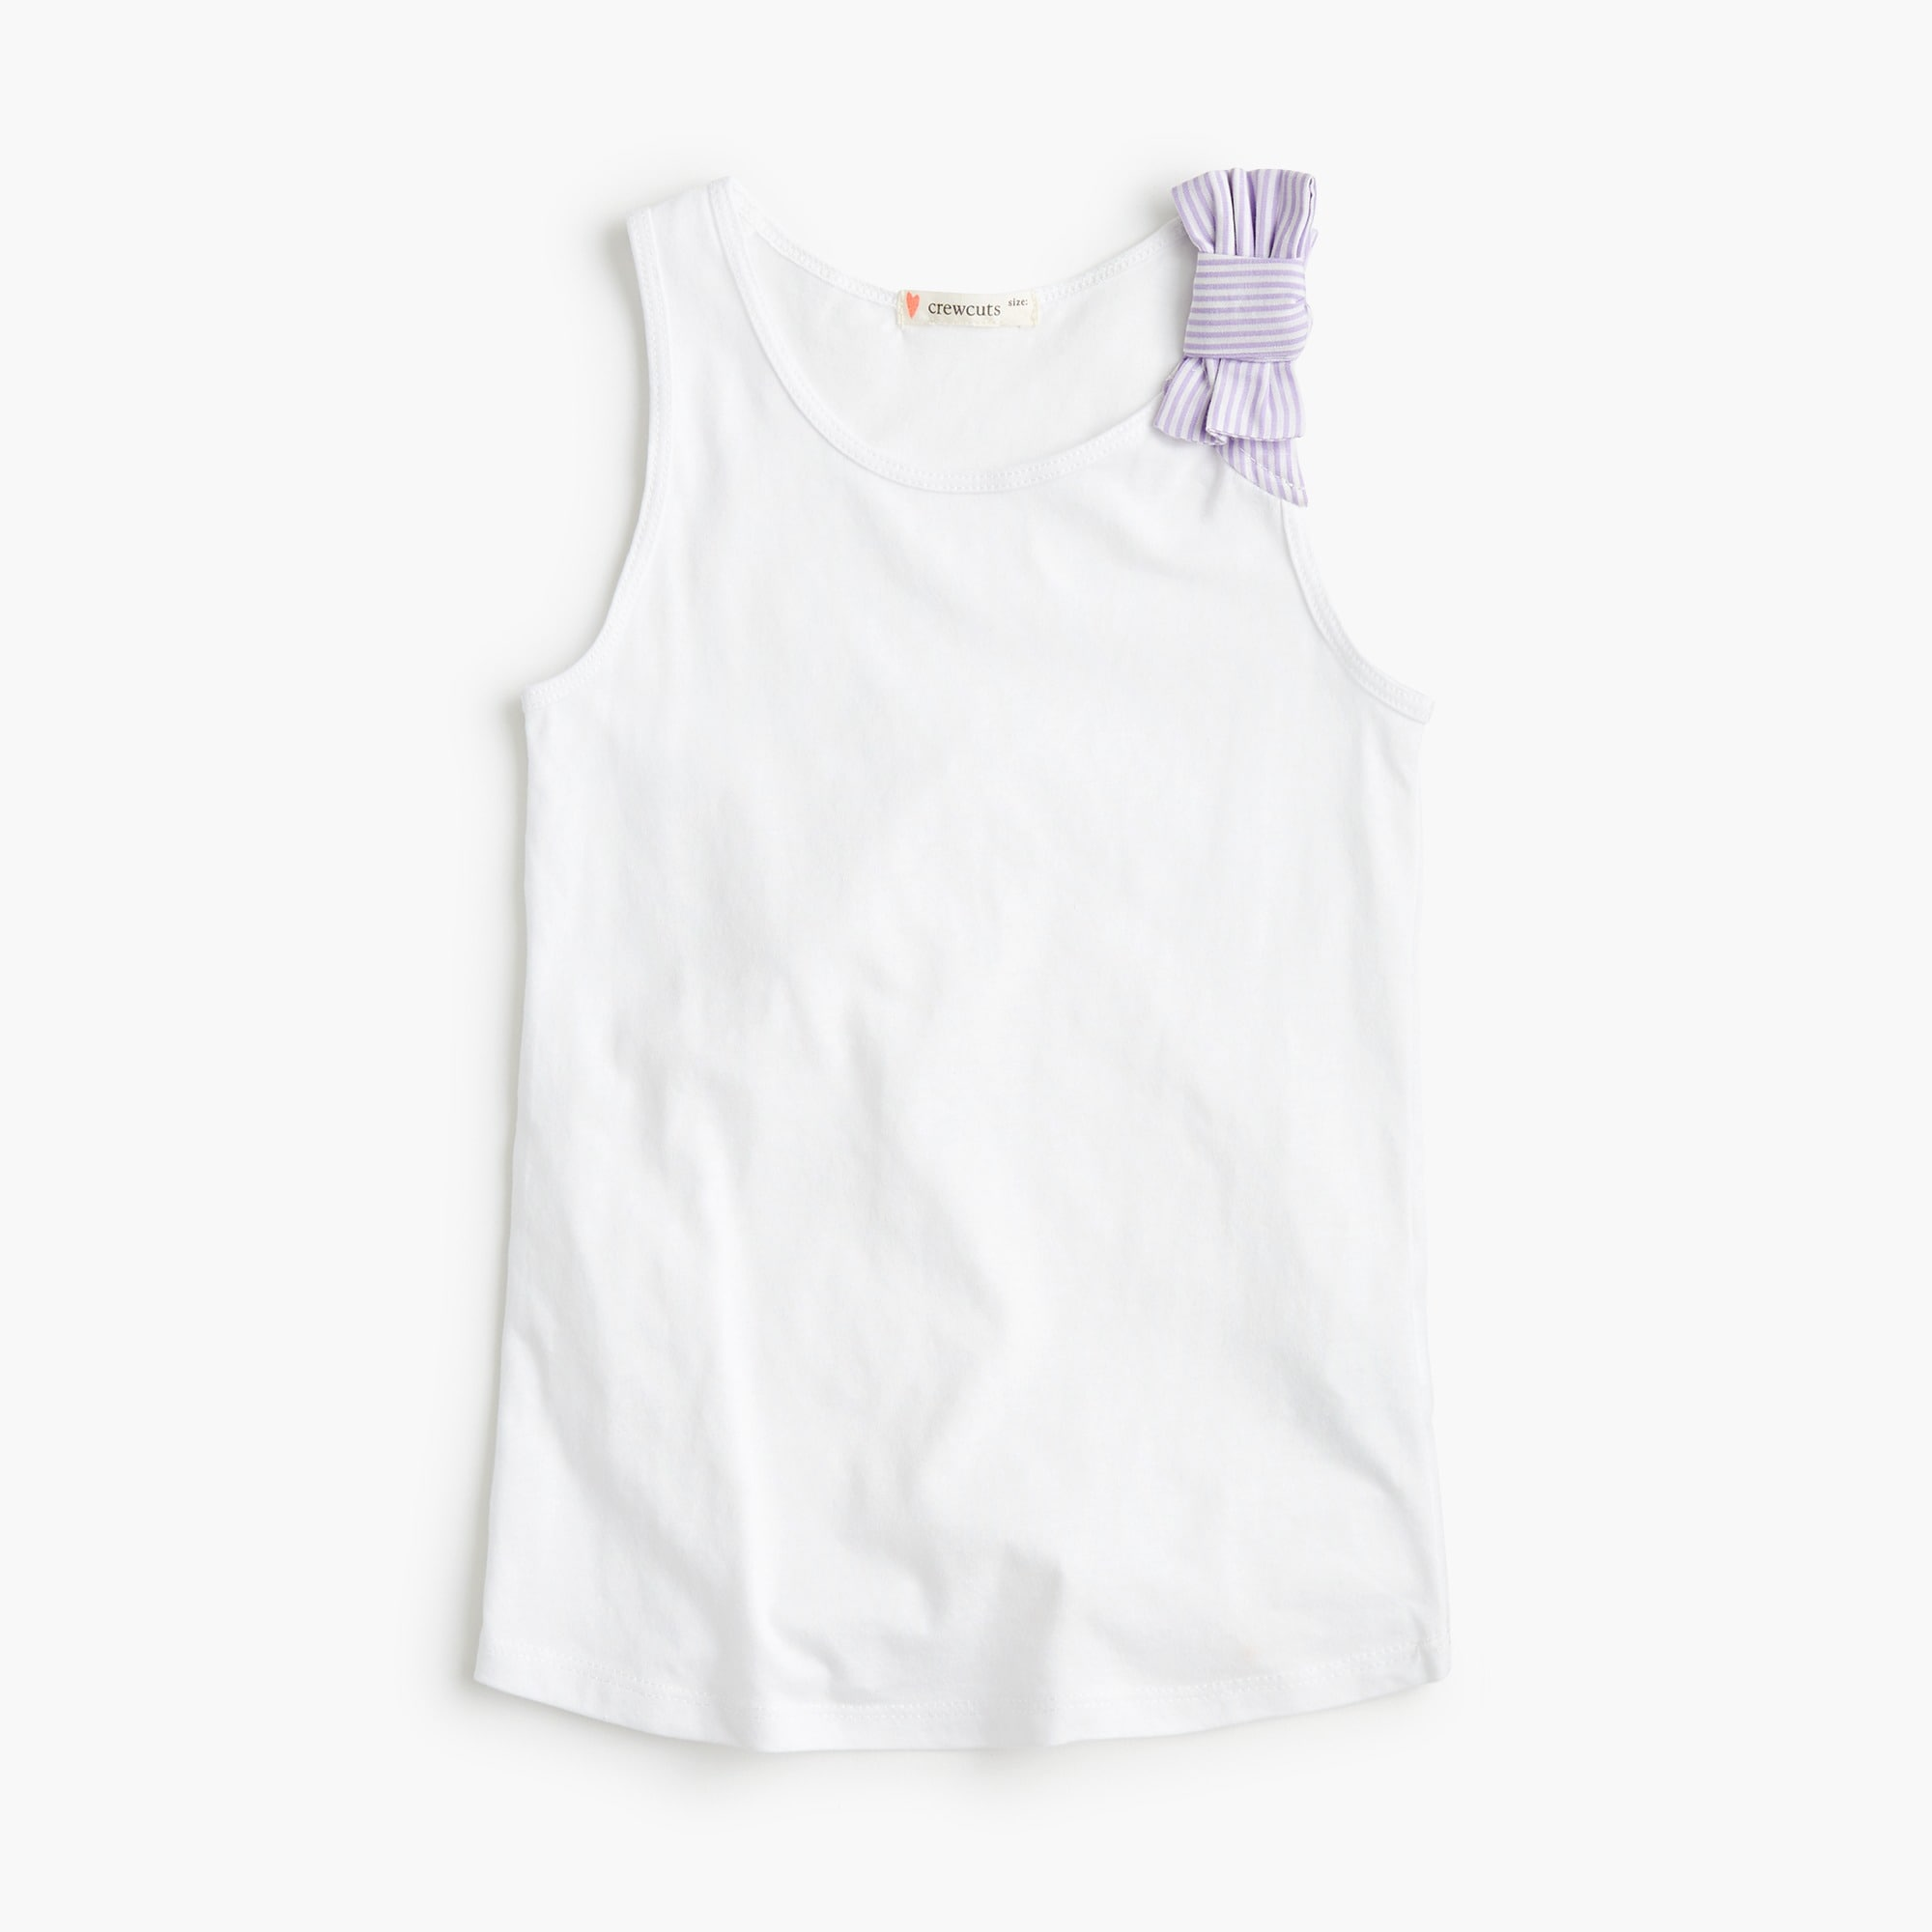 Girls' bow tank top girl new arrivals c